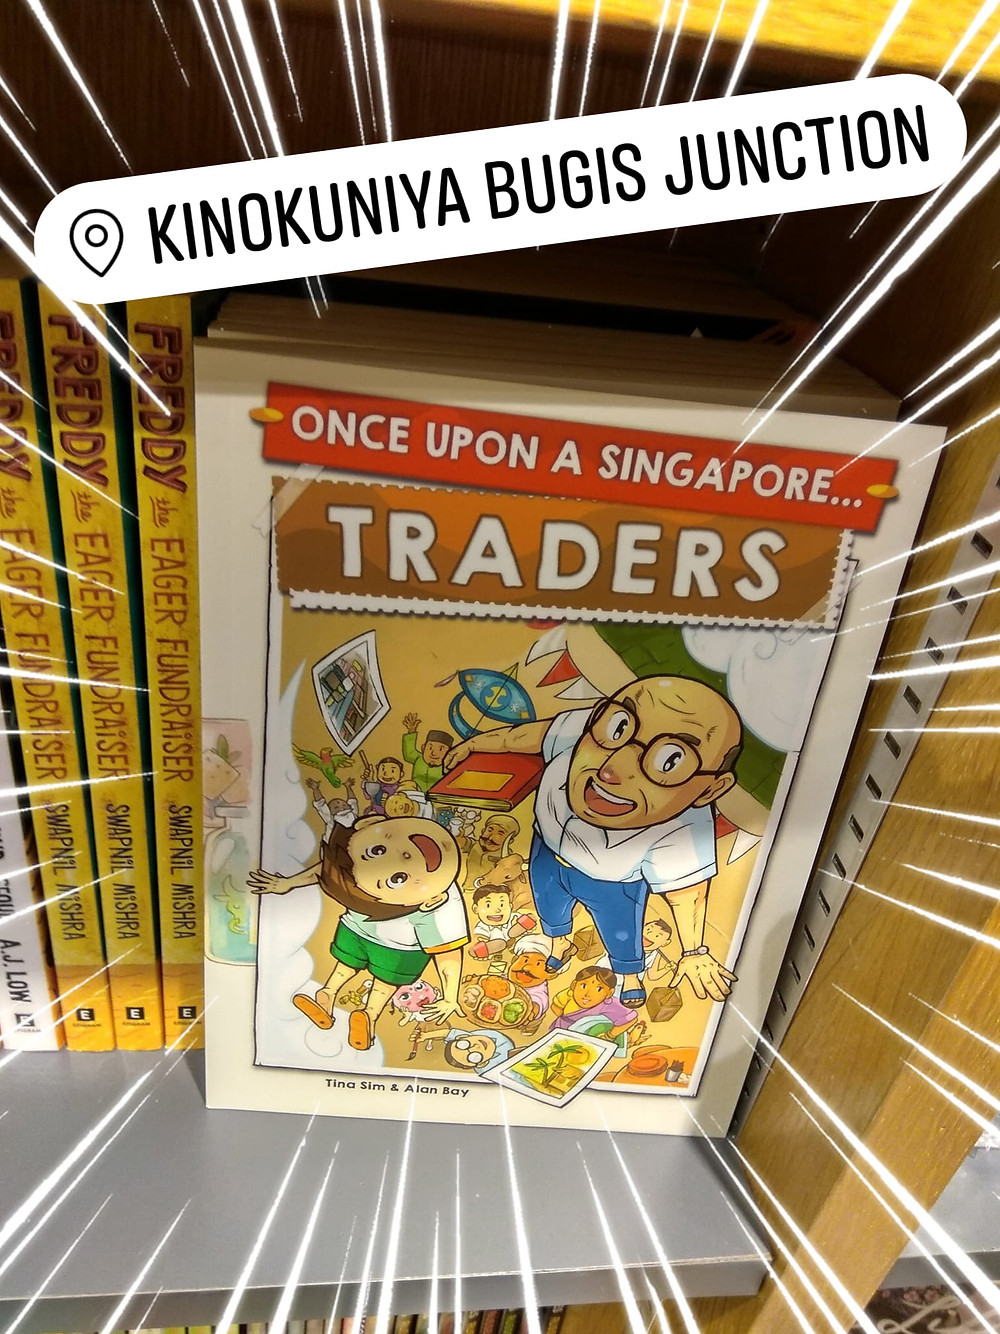 sgcomics, Once Upon A Singapore... Traders now at kinokuniya,